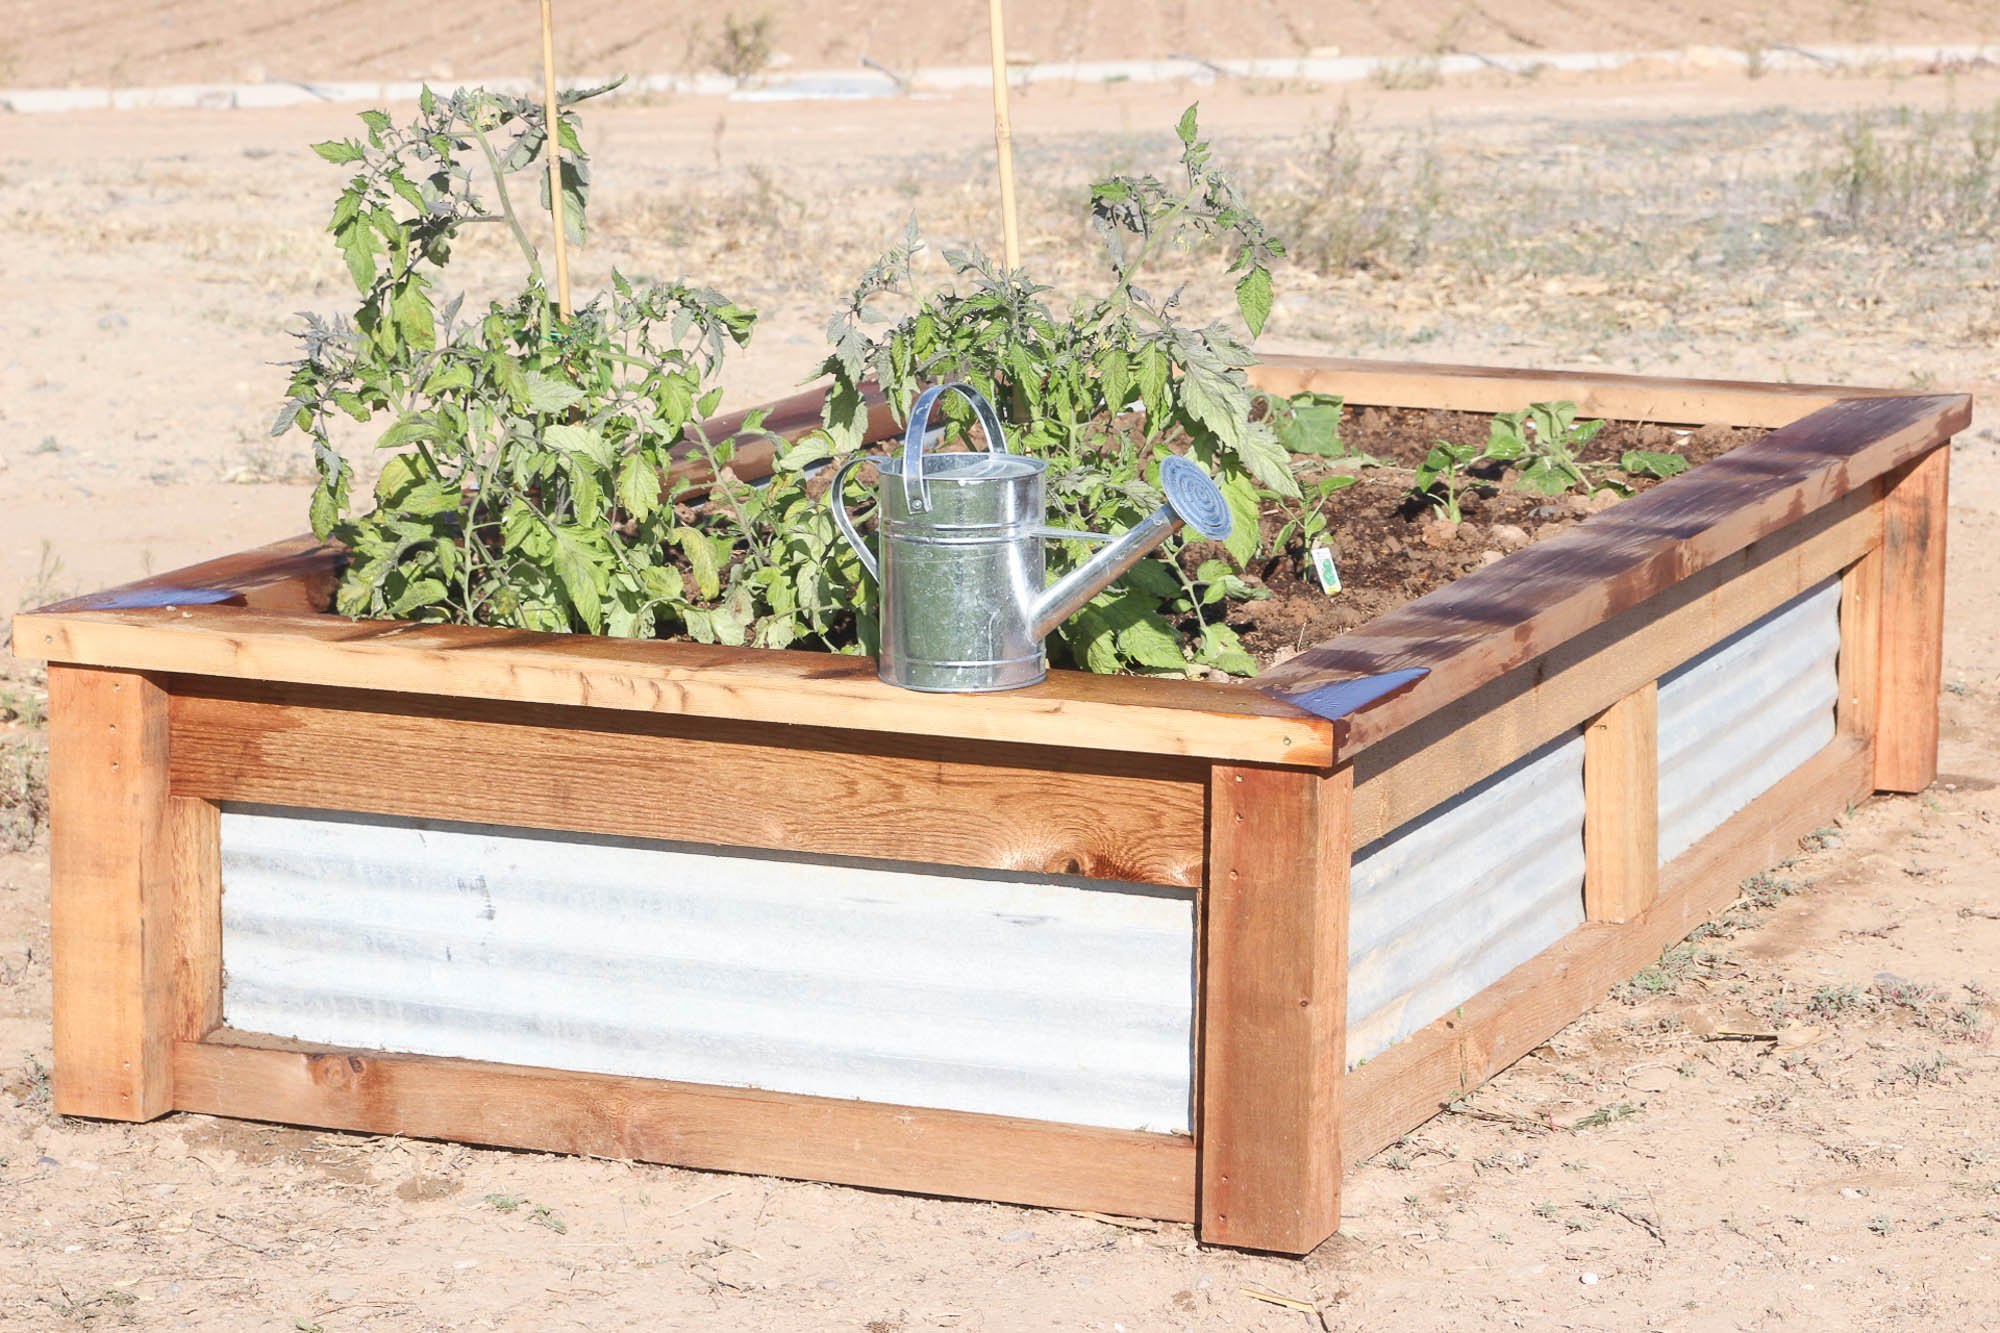 How to build raised garden beds with corrugated metal ehow for Corrugated metal raised garden beds